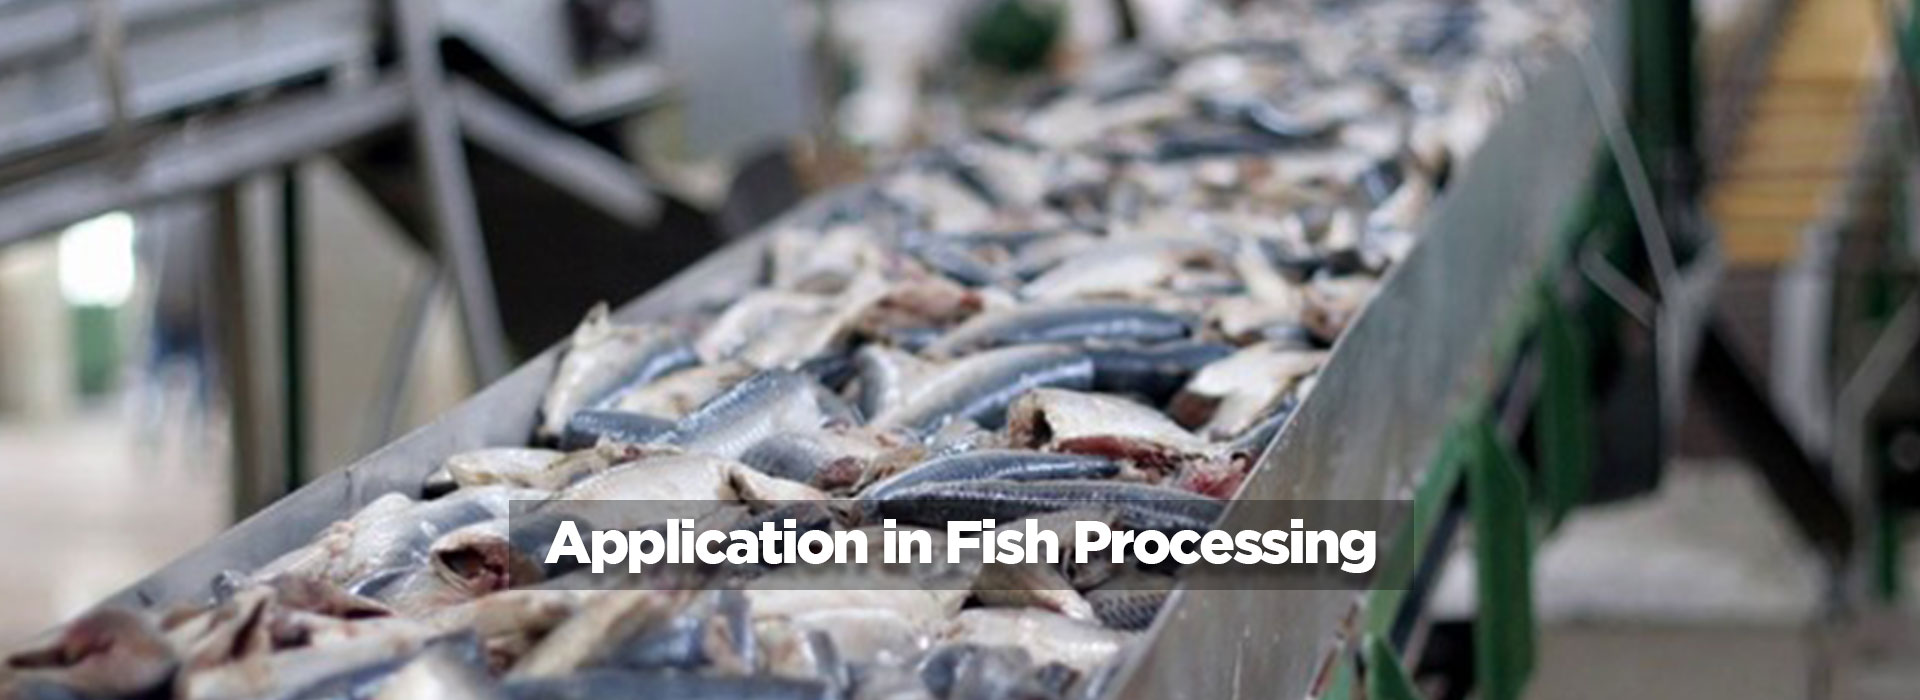 Application in Fish Processing